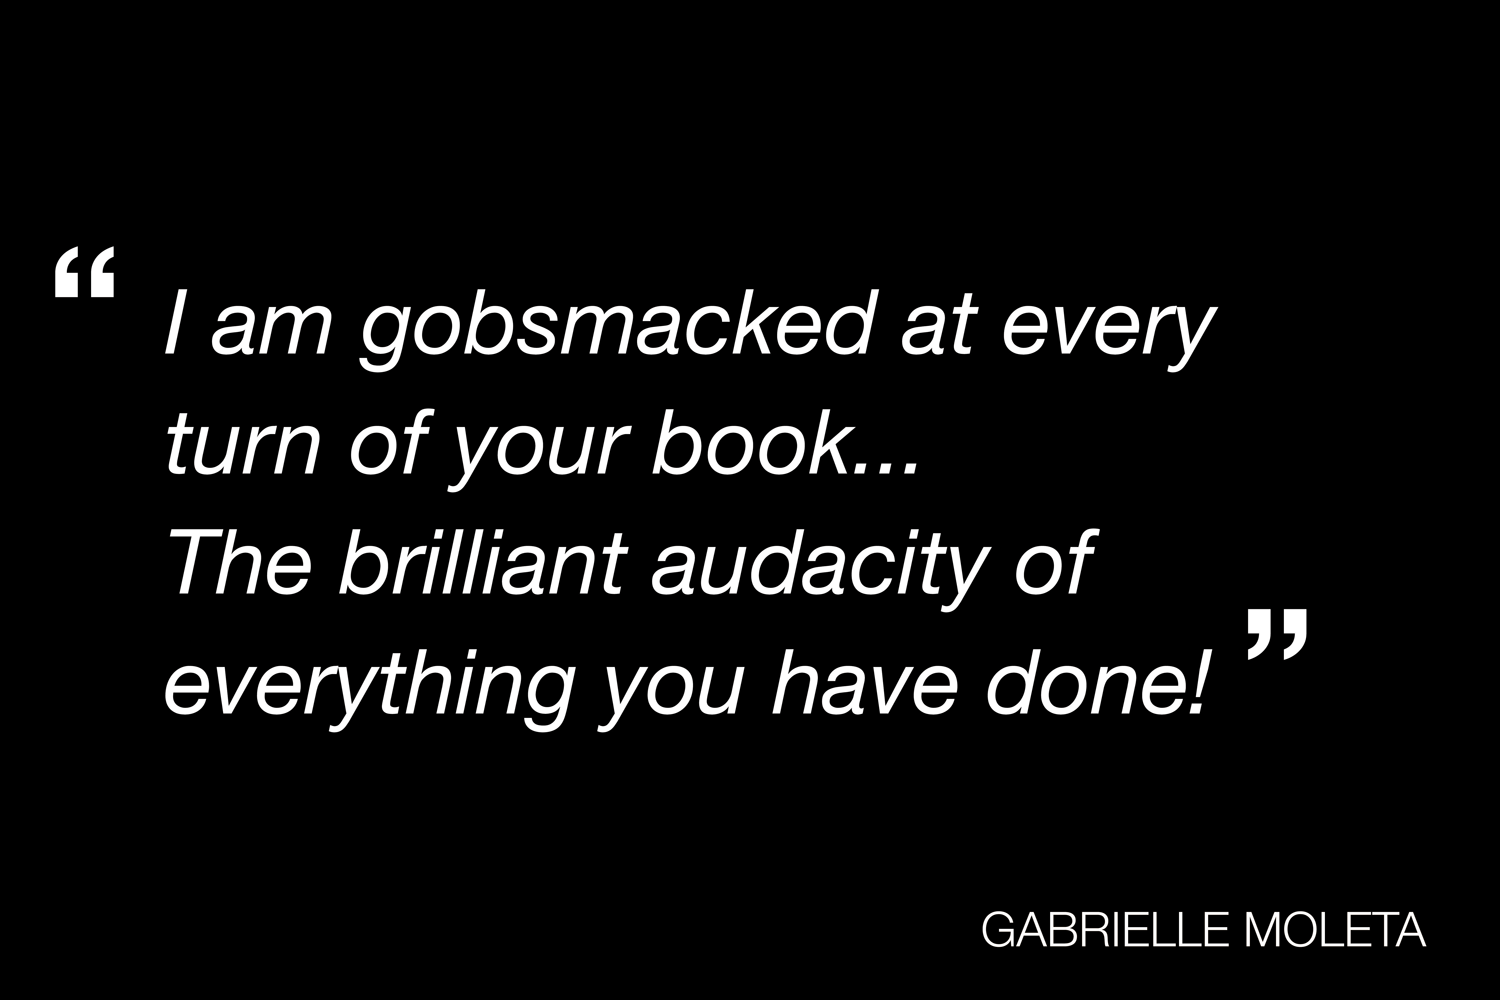 A Quote From Gabrielle Moleta